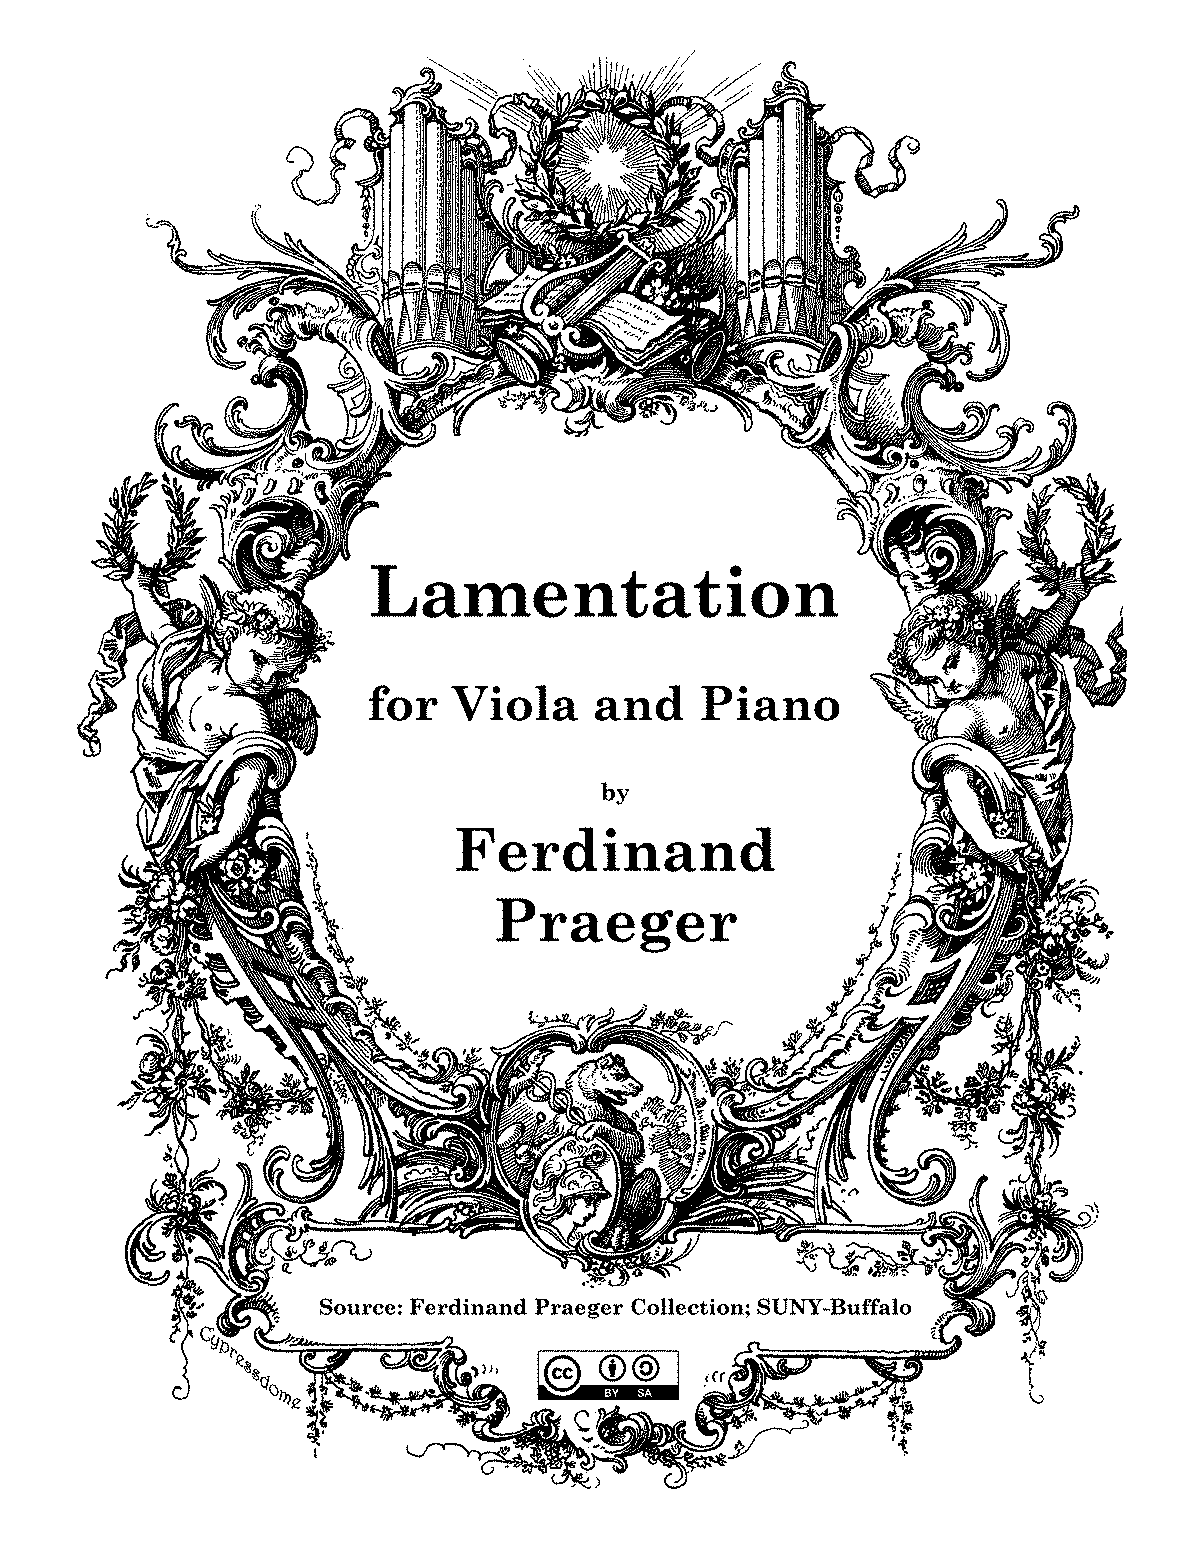 PMLP593210-FPraeger Lamentation for Viola and Piano typeset.pdf